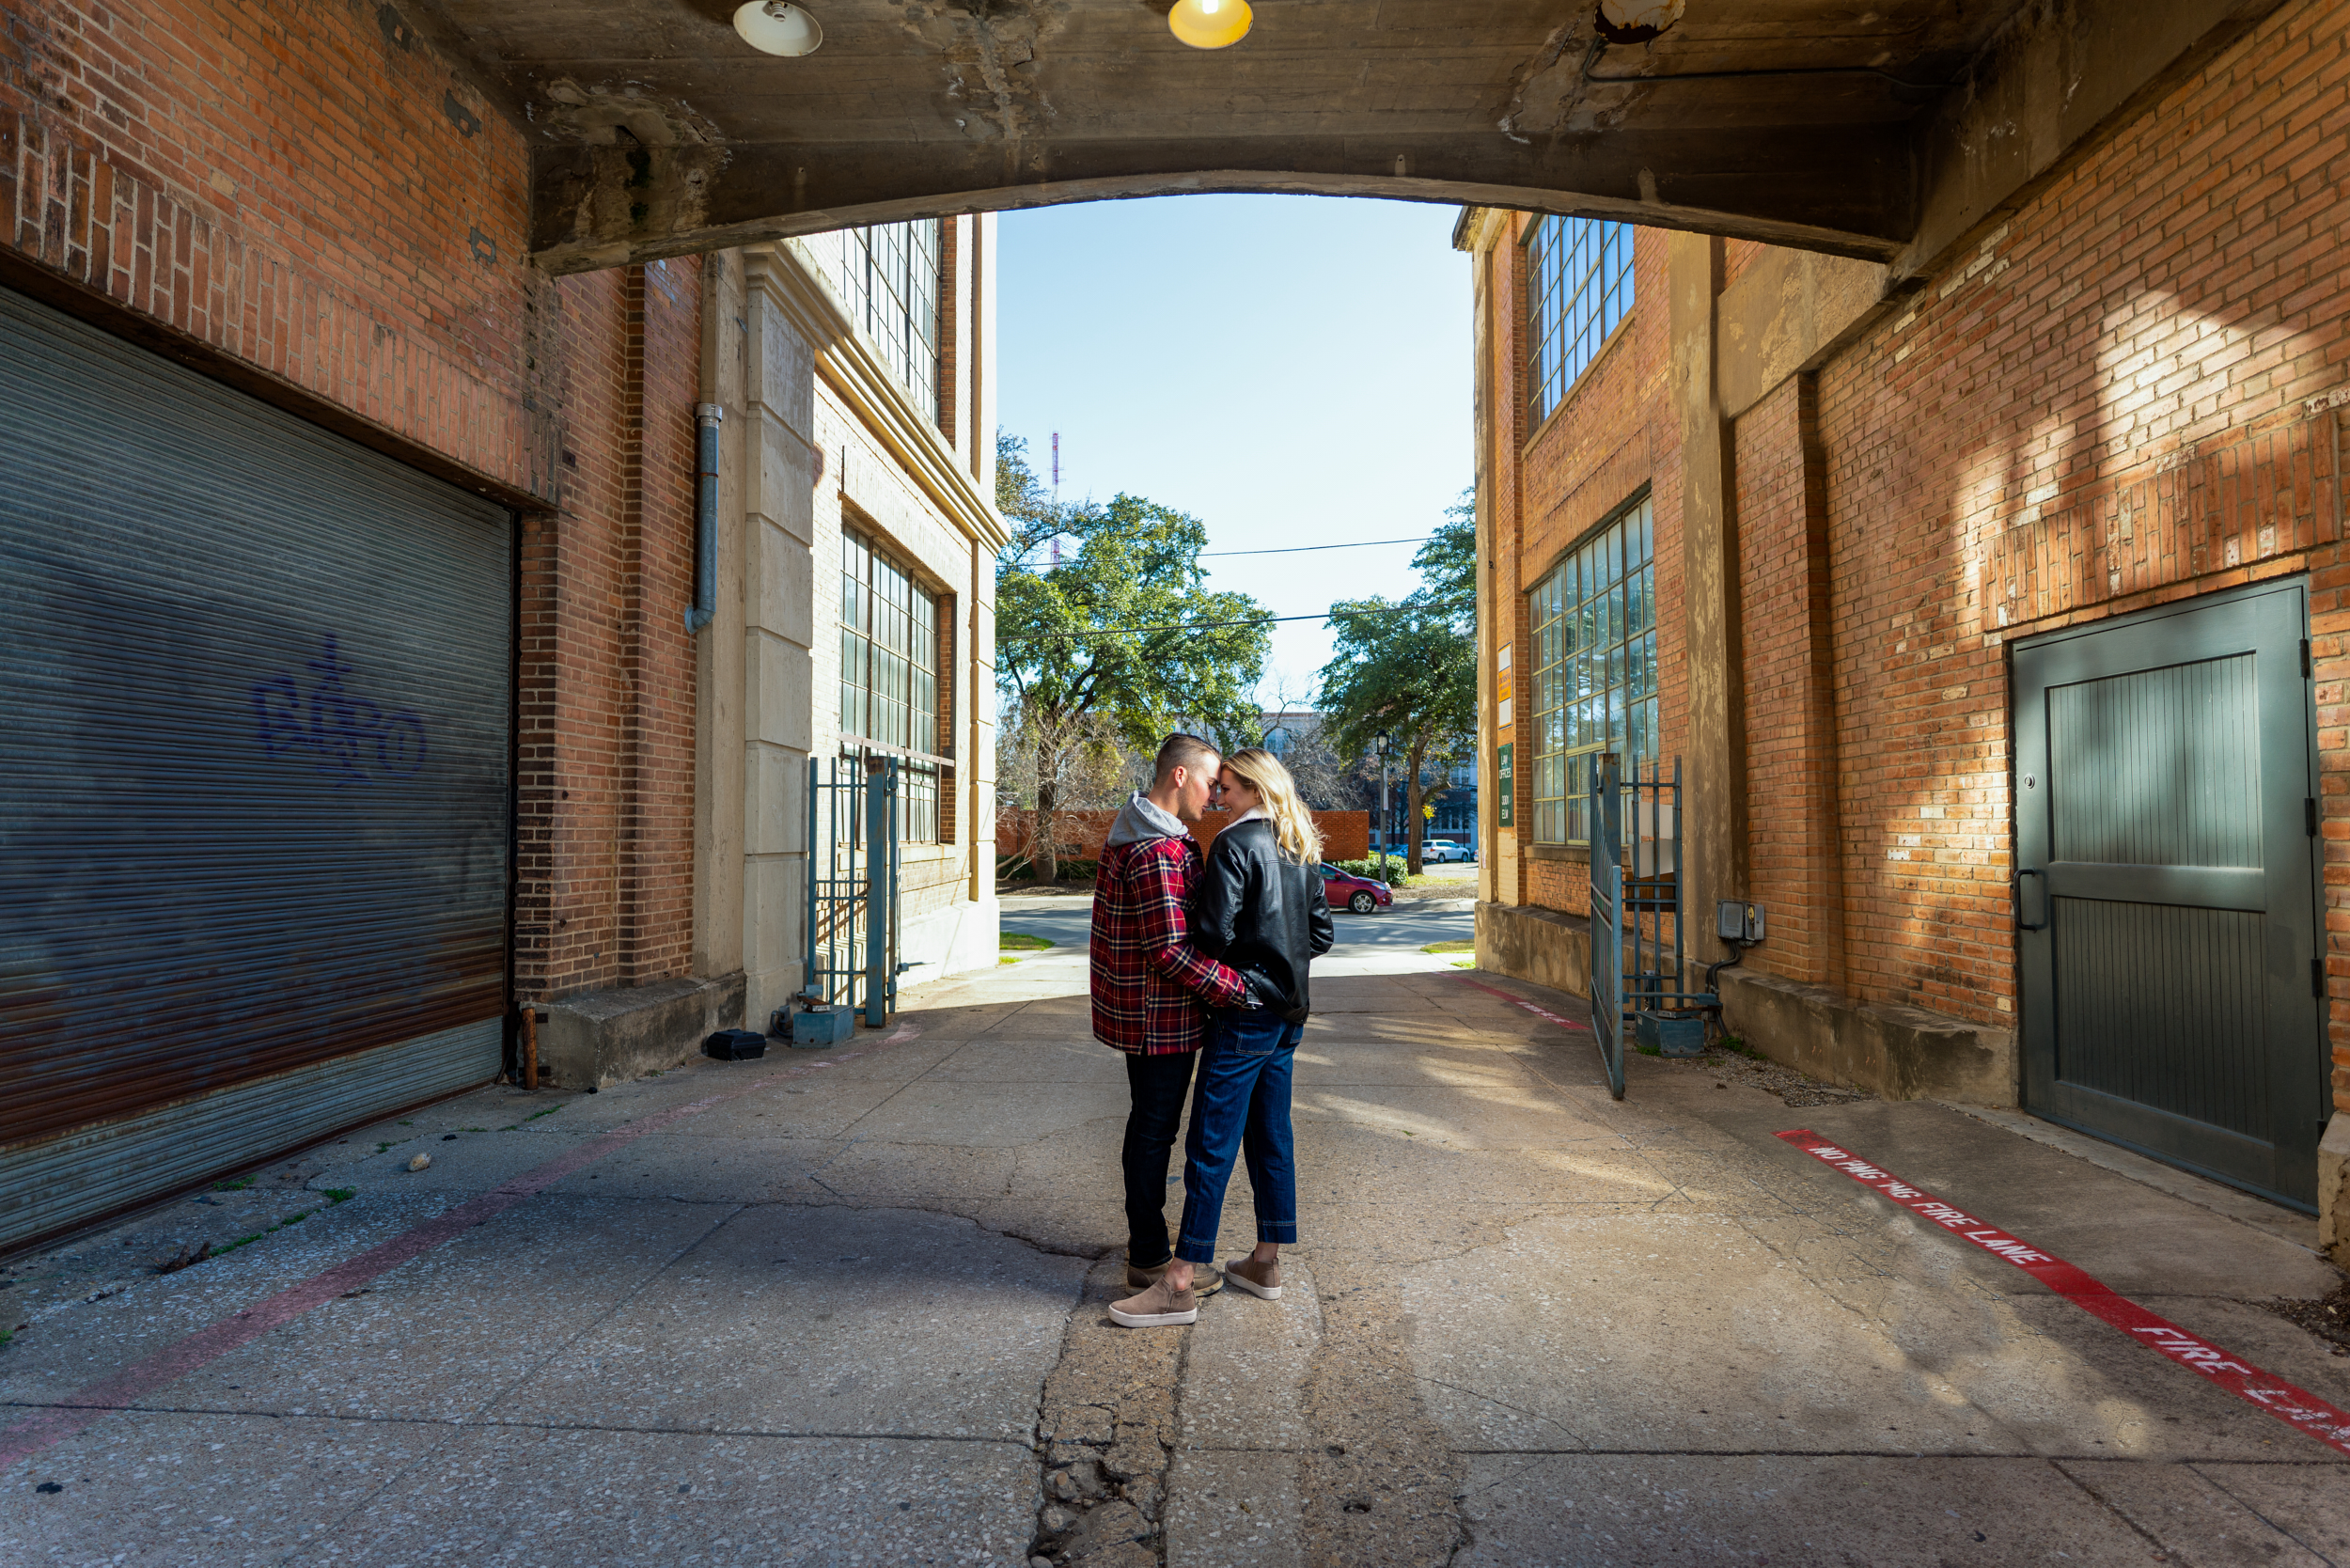 Ashley and Dalton in an embrace while walking through an ally in Deep Ellum, a small part of Downtown, Dallas.